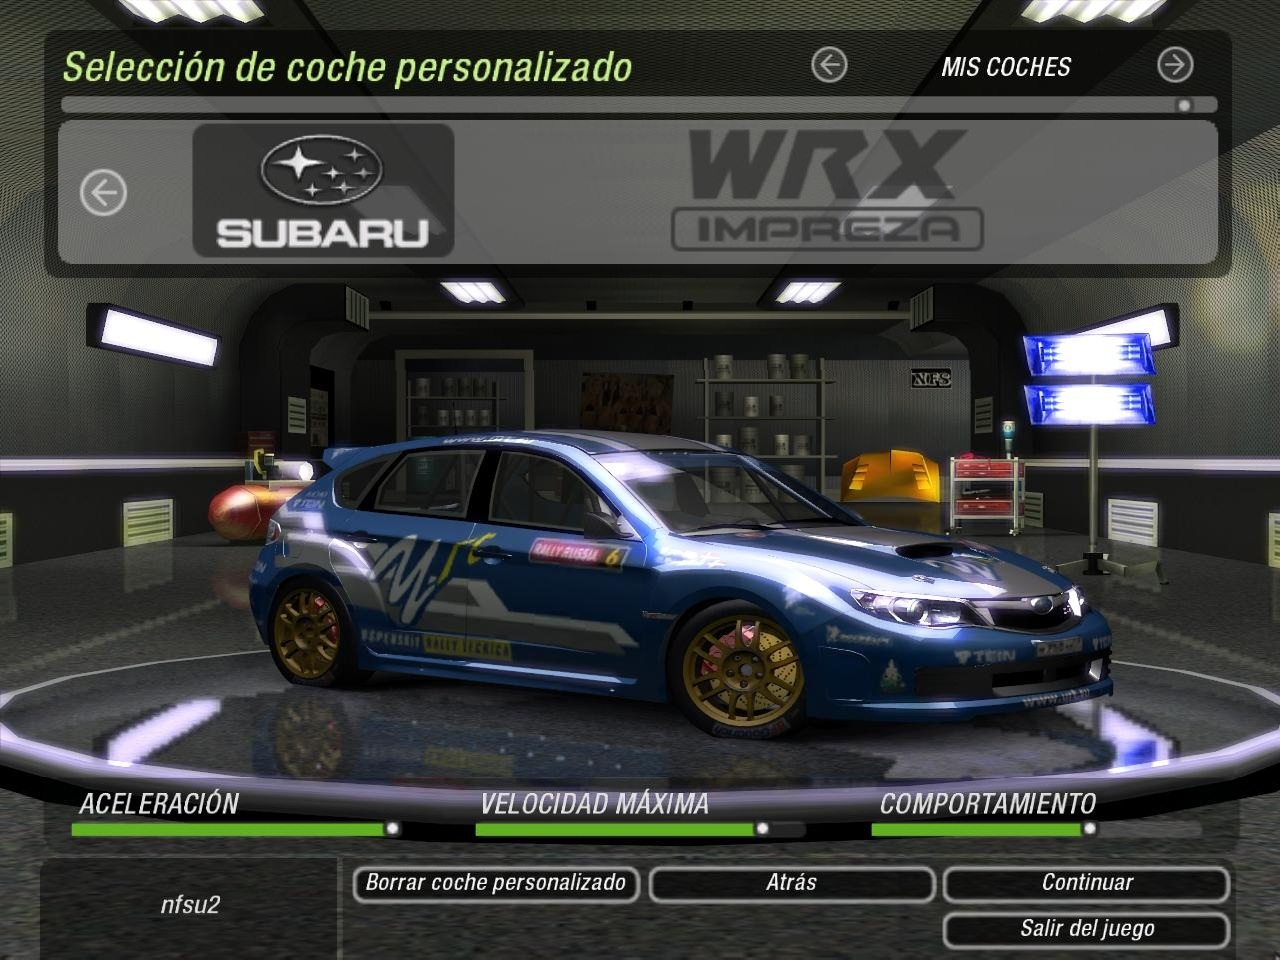 Fast And Furious 6 Cars Hd Wallpaper Need For Speed Underground 2 Subaru Impreza Wrx N14 Nfscars